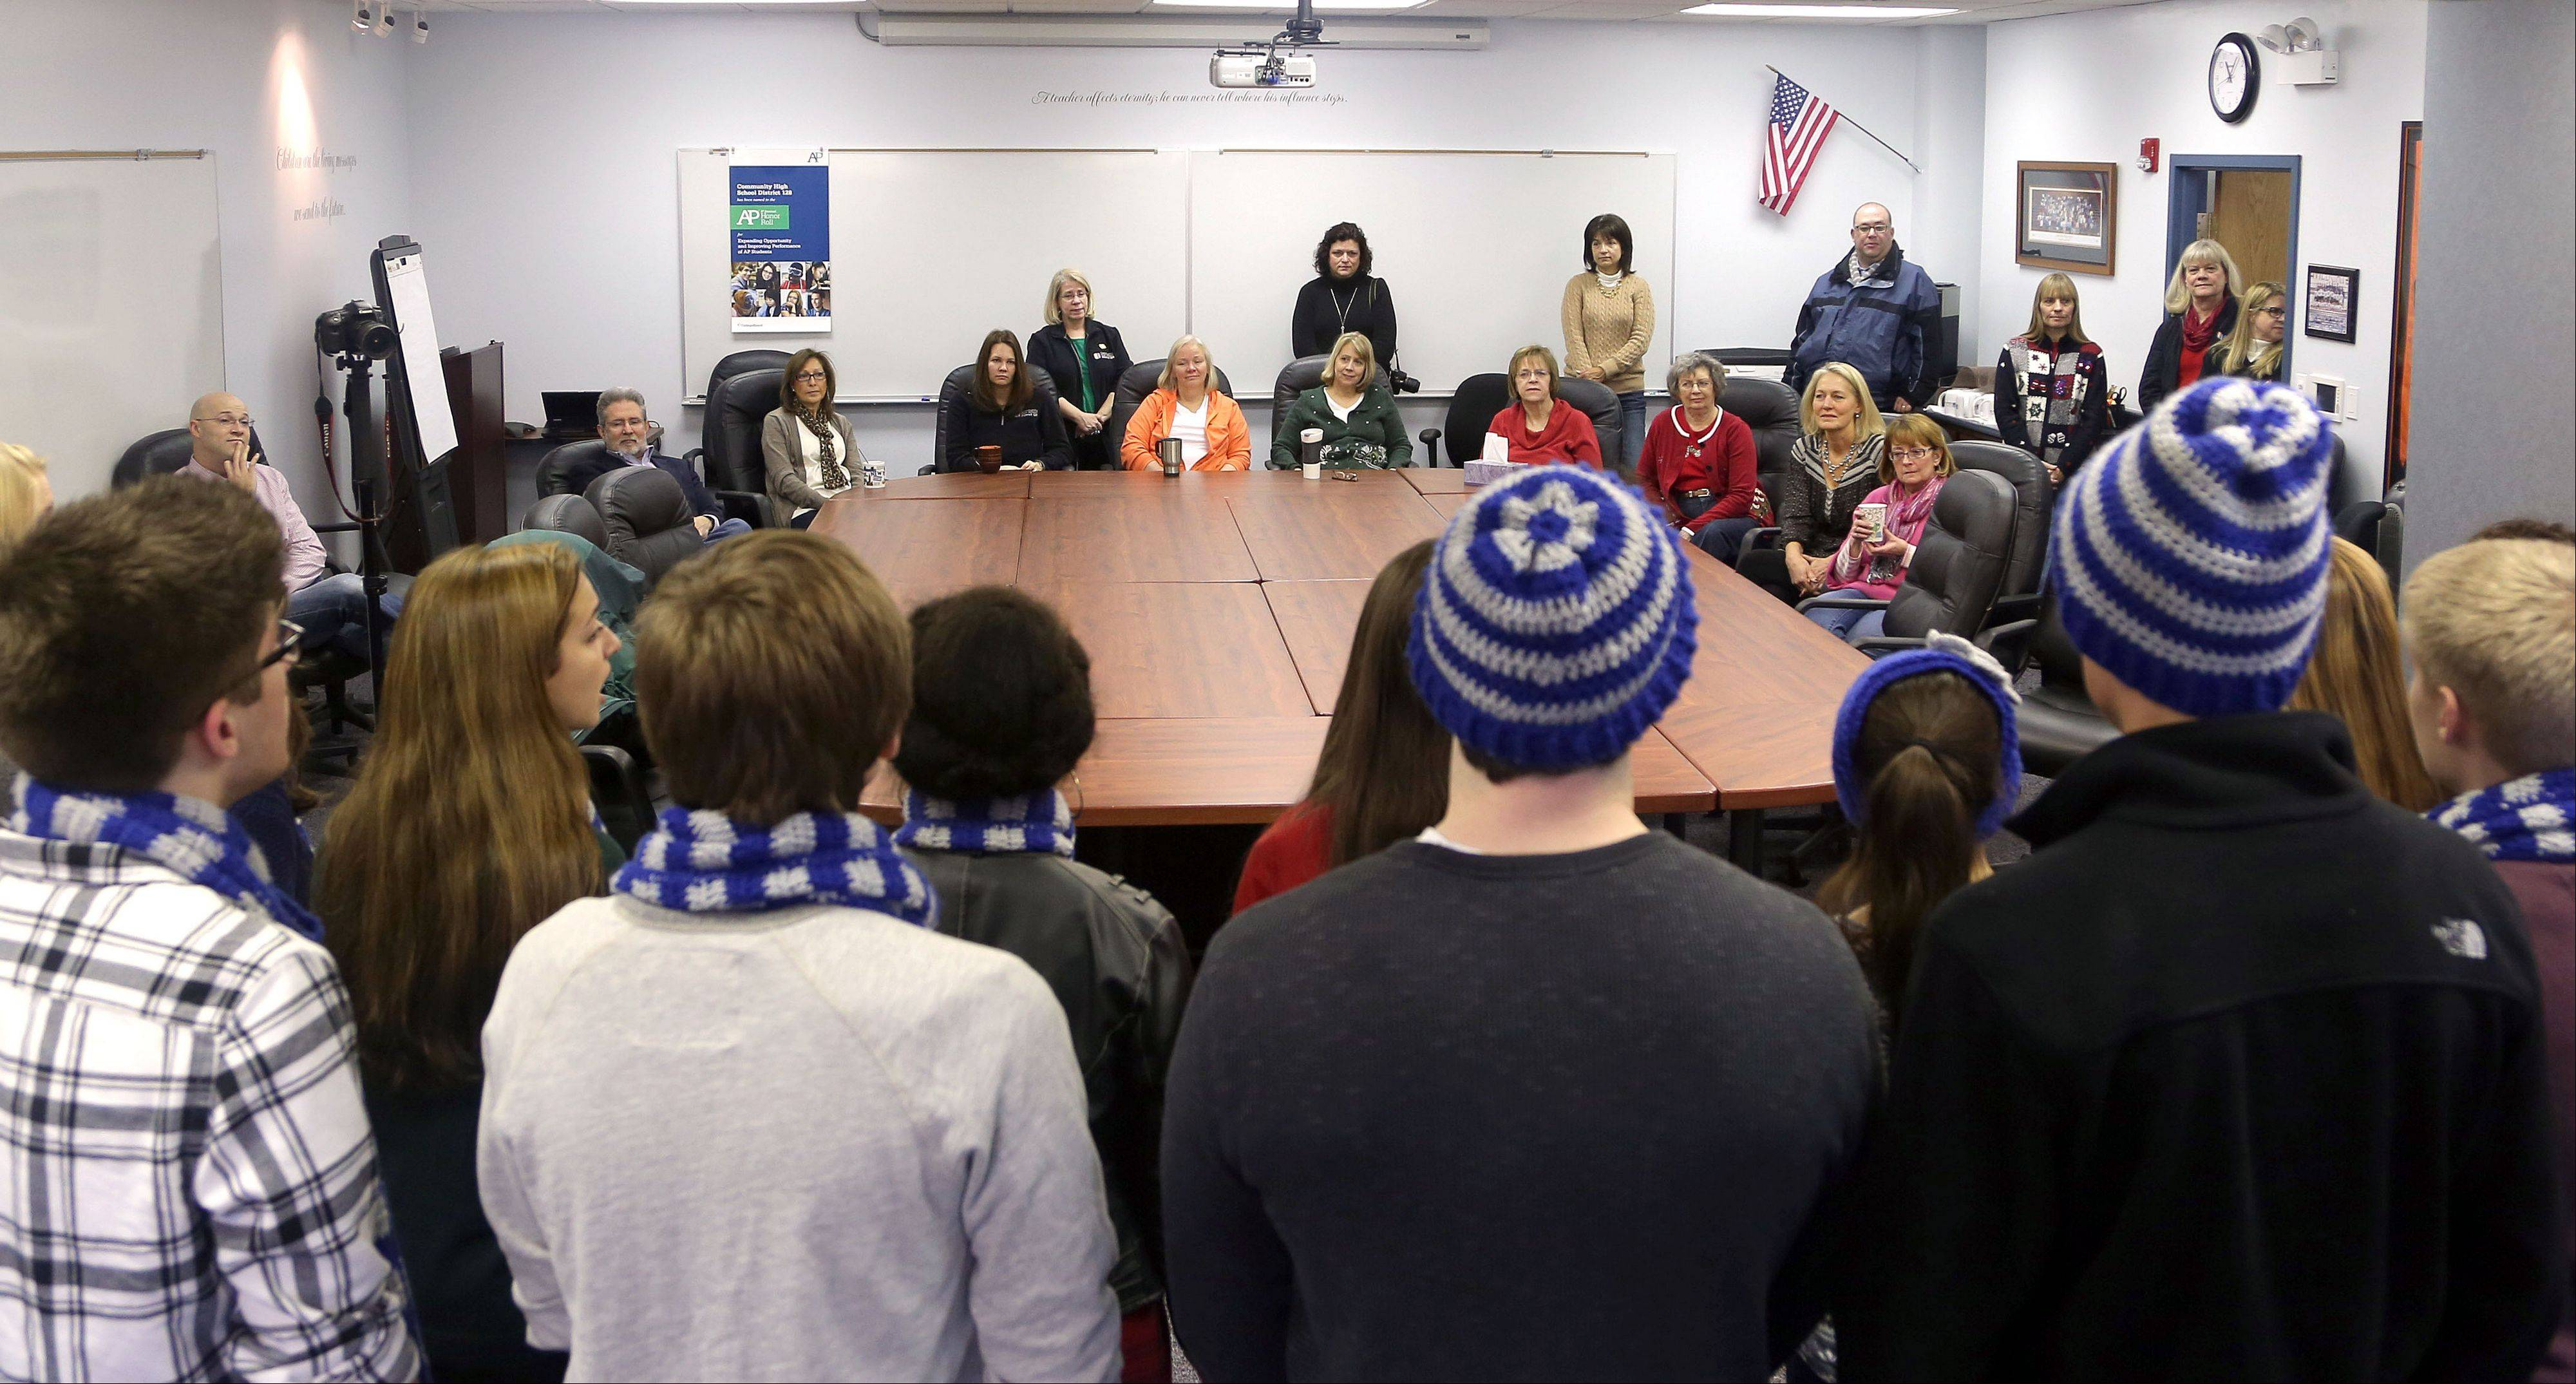 Libertyville-Vernon Hills Area High School District 128 office staff was treated to Christmas carols sung by the Vernon Hills High School chamber choir Friday.